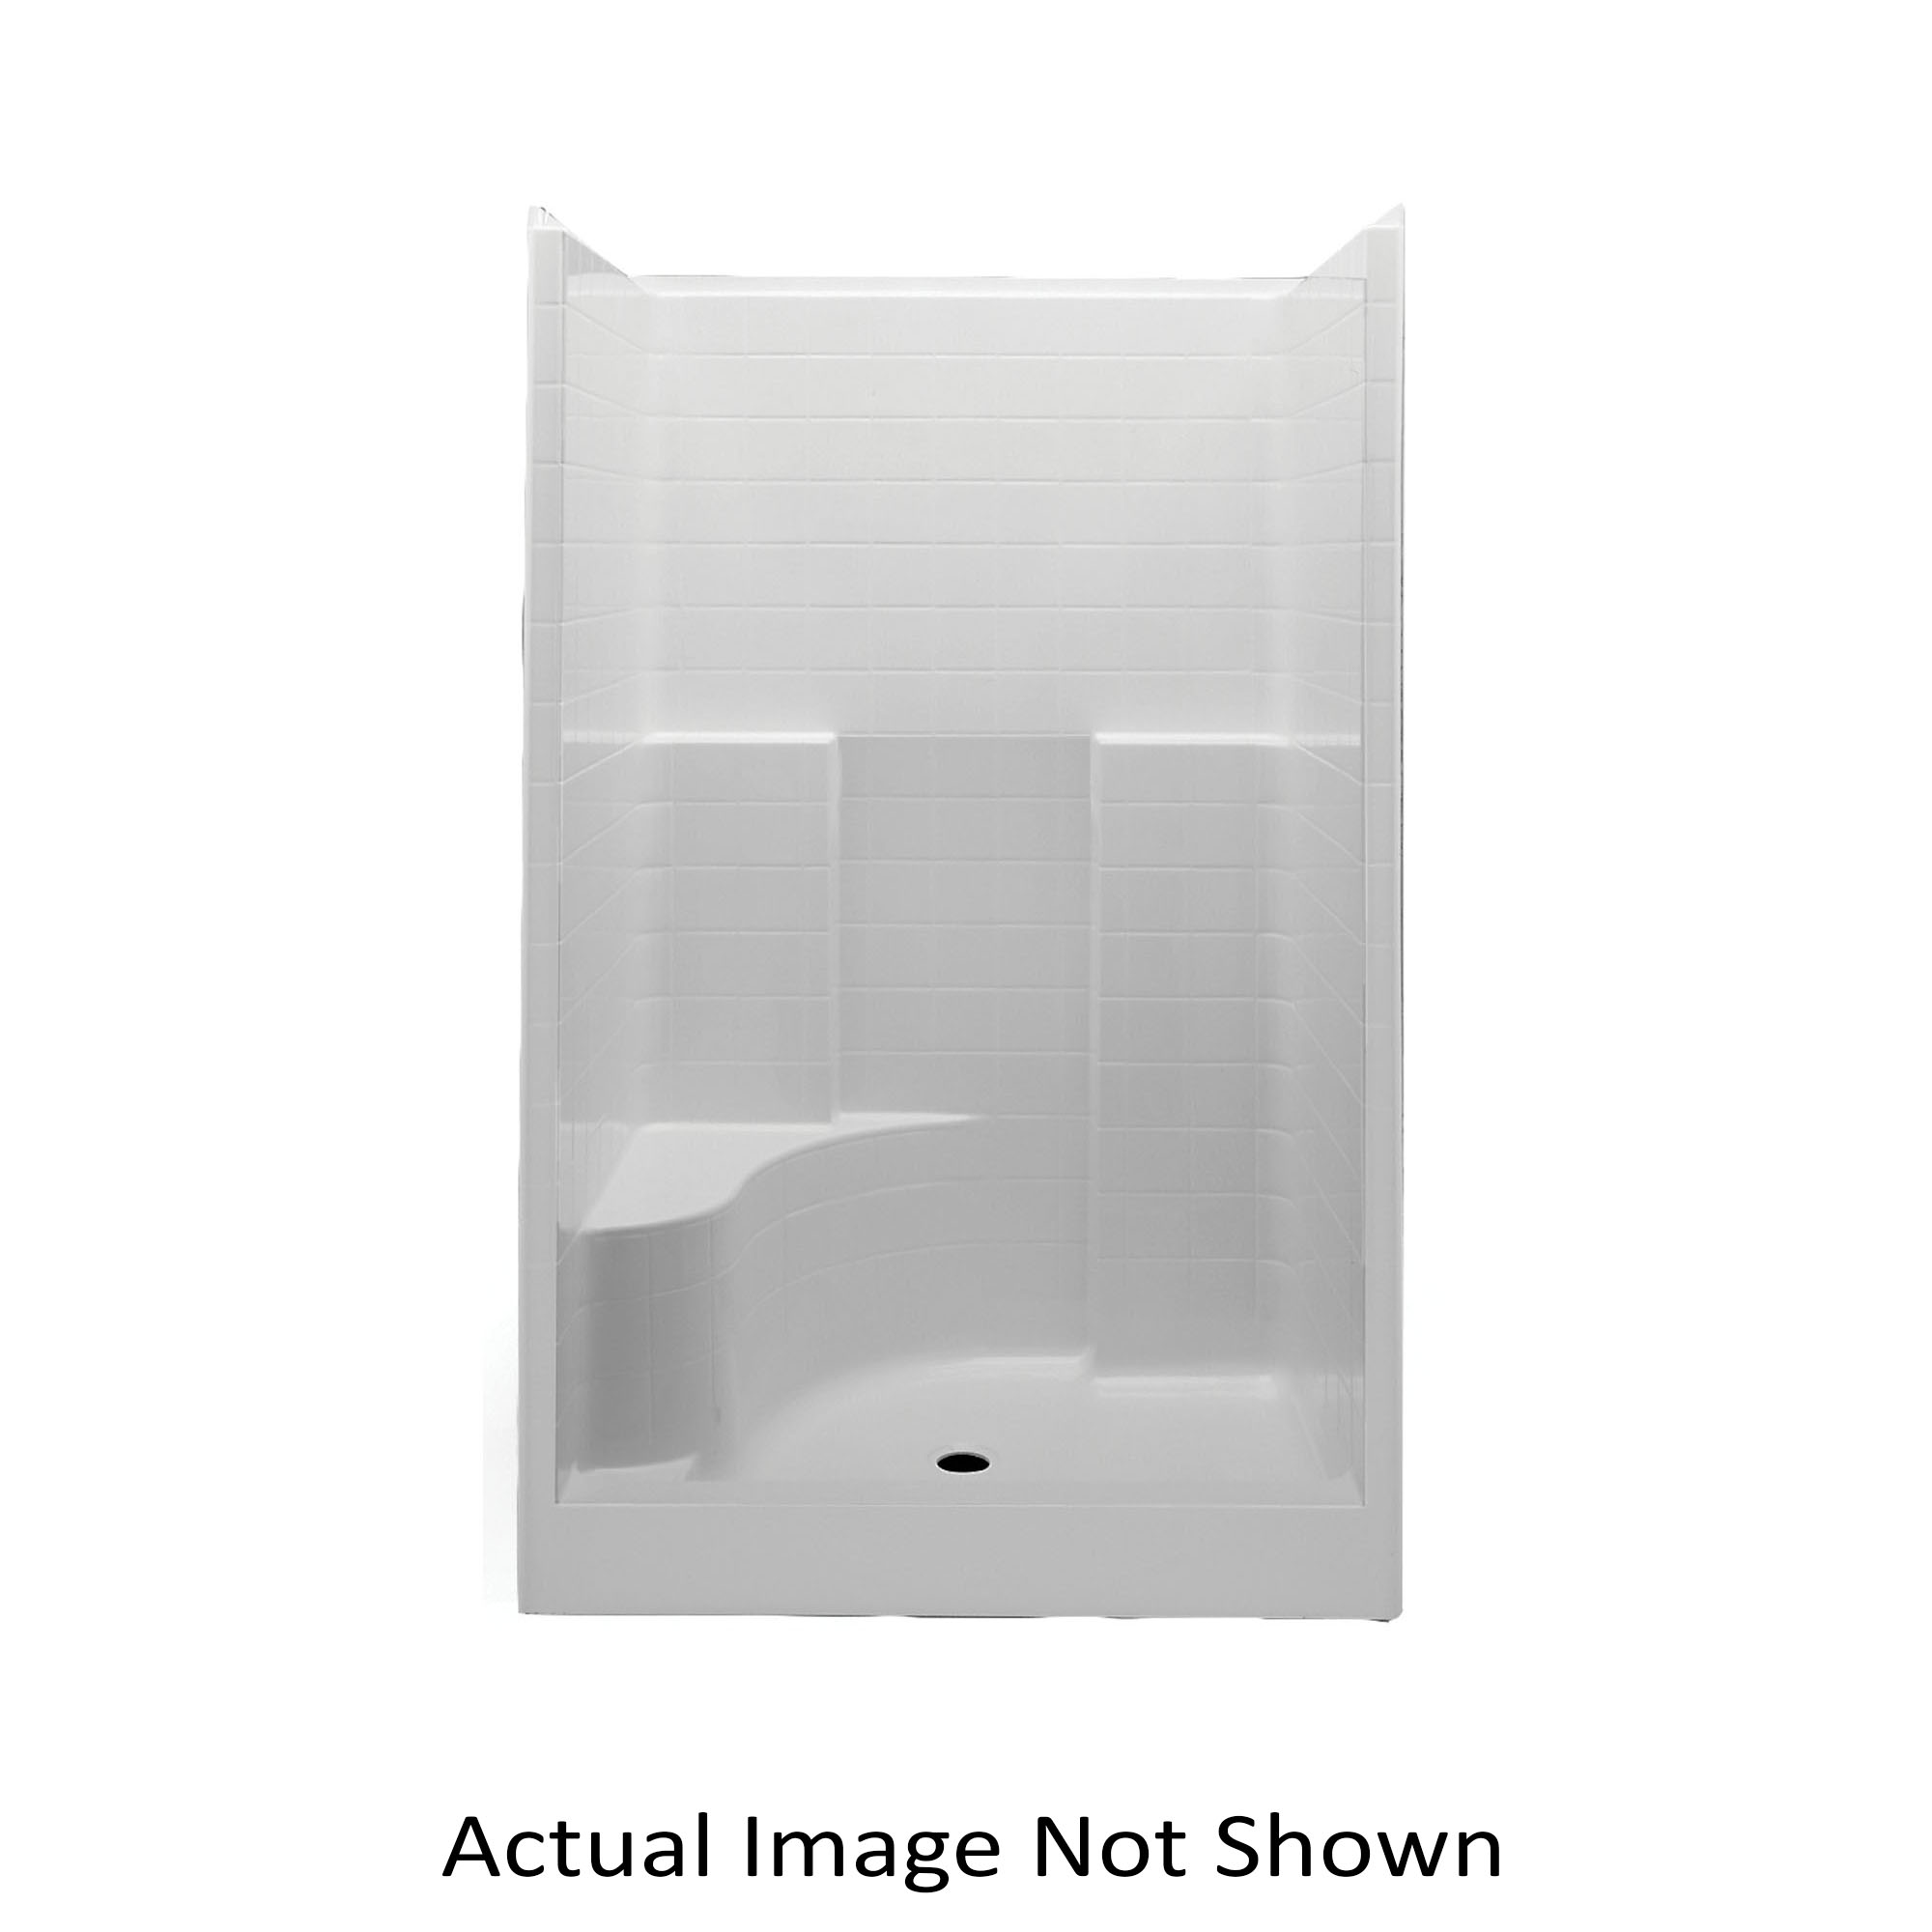 Aquatic 1483STTL-WH Everyday 1-Piece Shower Stall With Molded Left Seat, 48 in L x 34-7/8 in W x 76 in H, Gelcoat